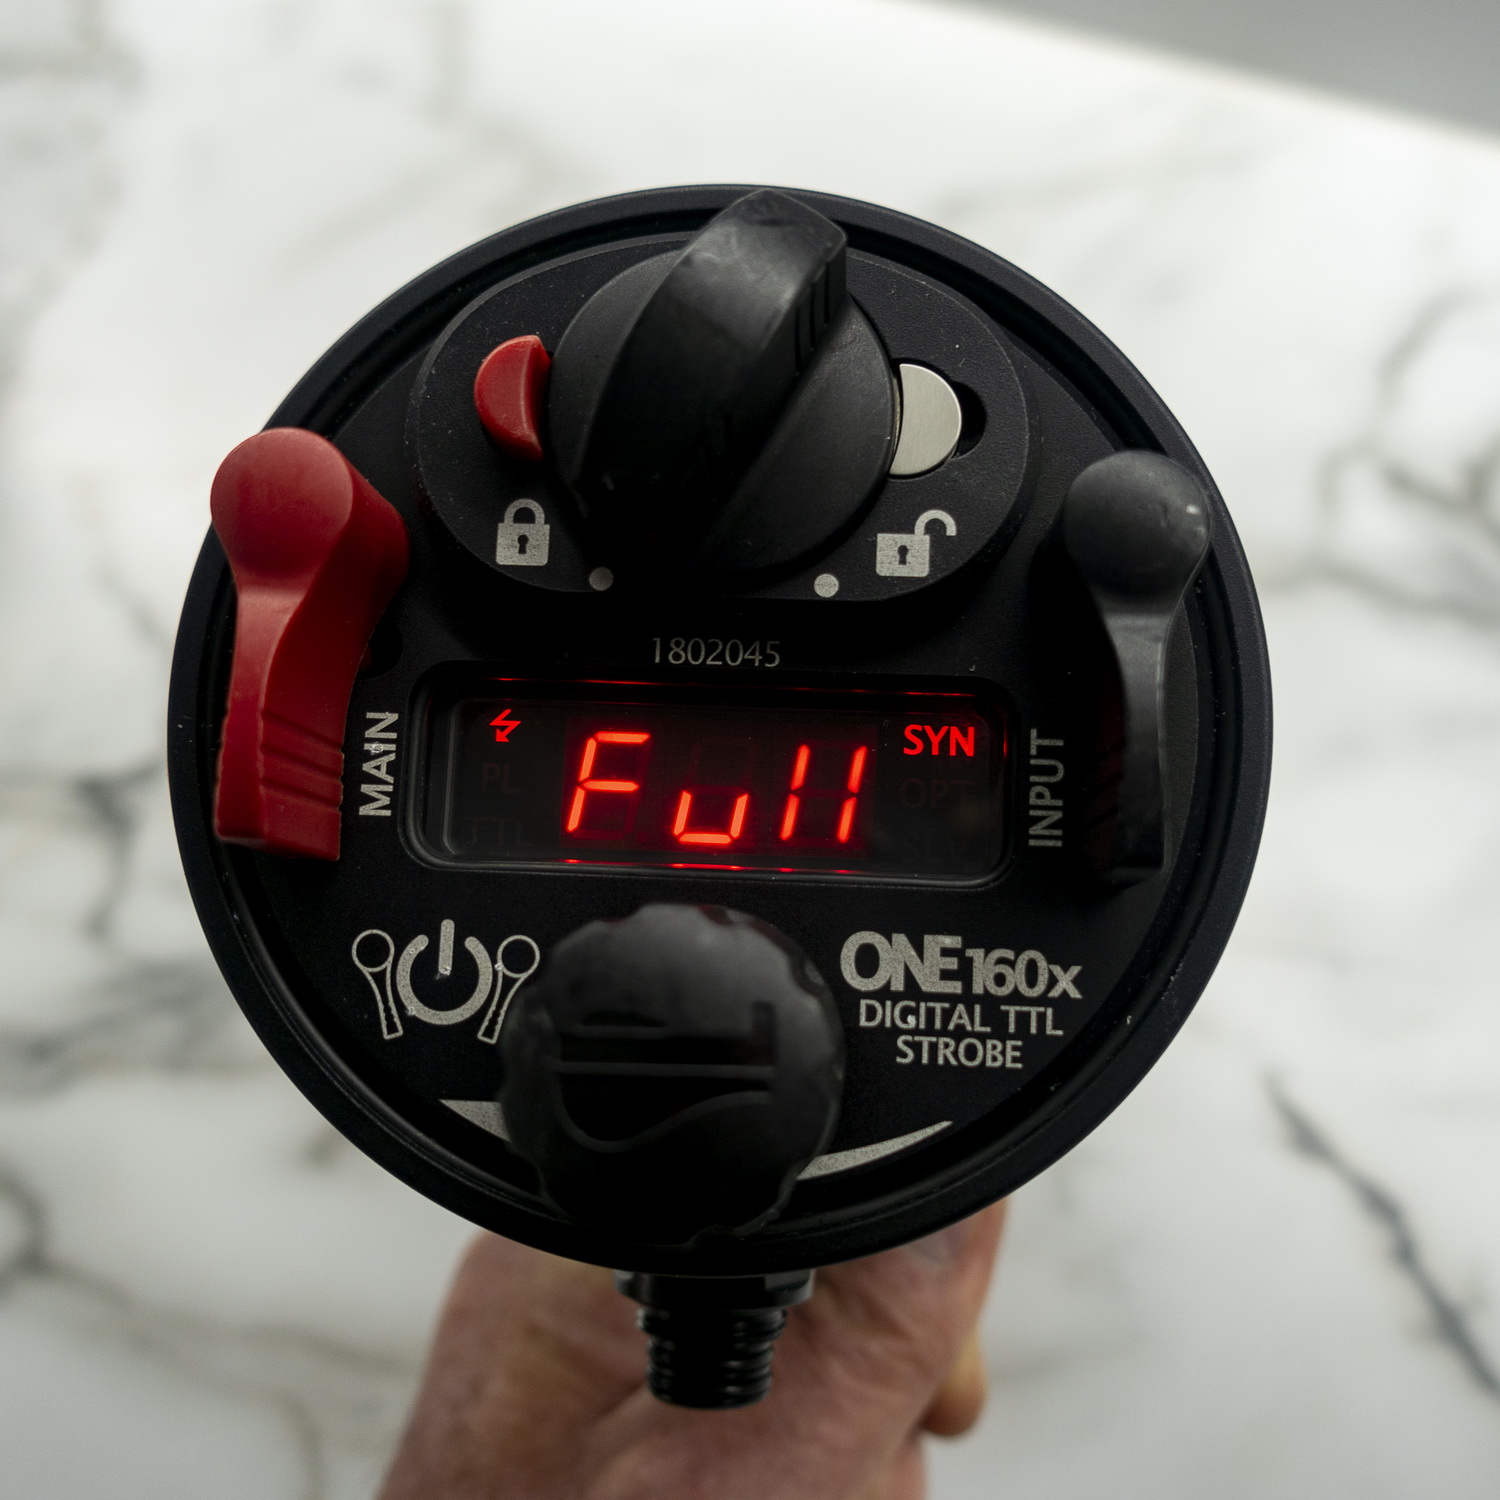 ONEUW One160X Strobe Review Rear